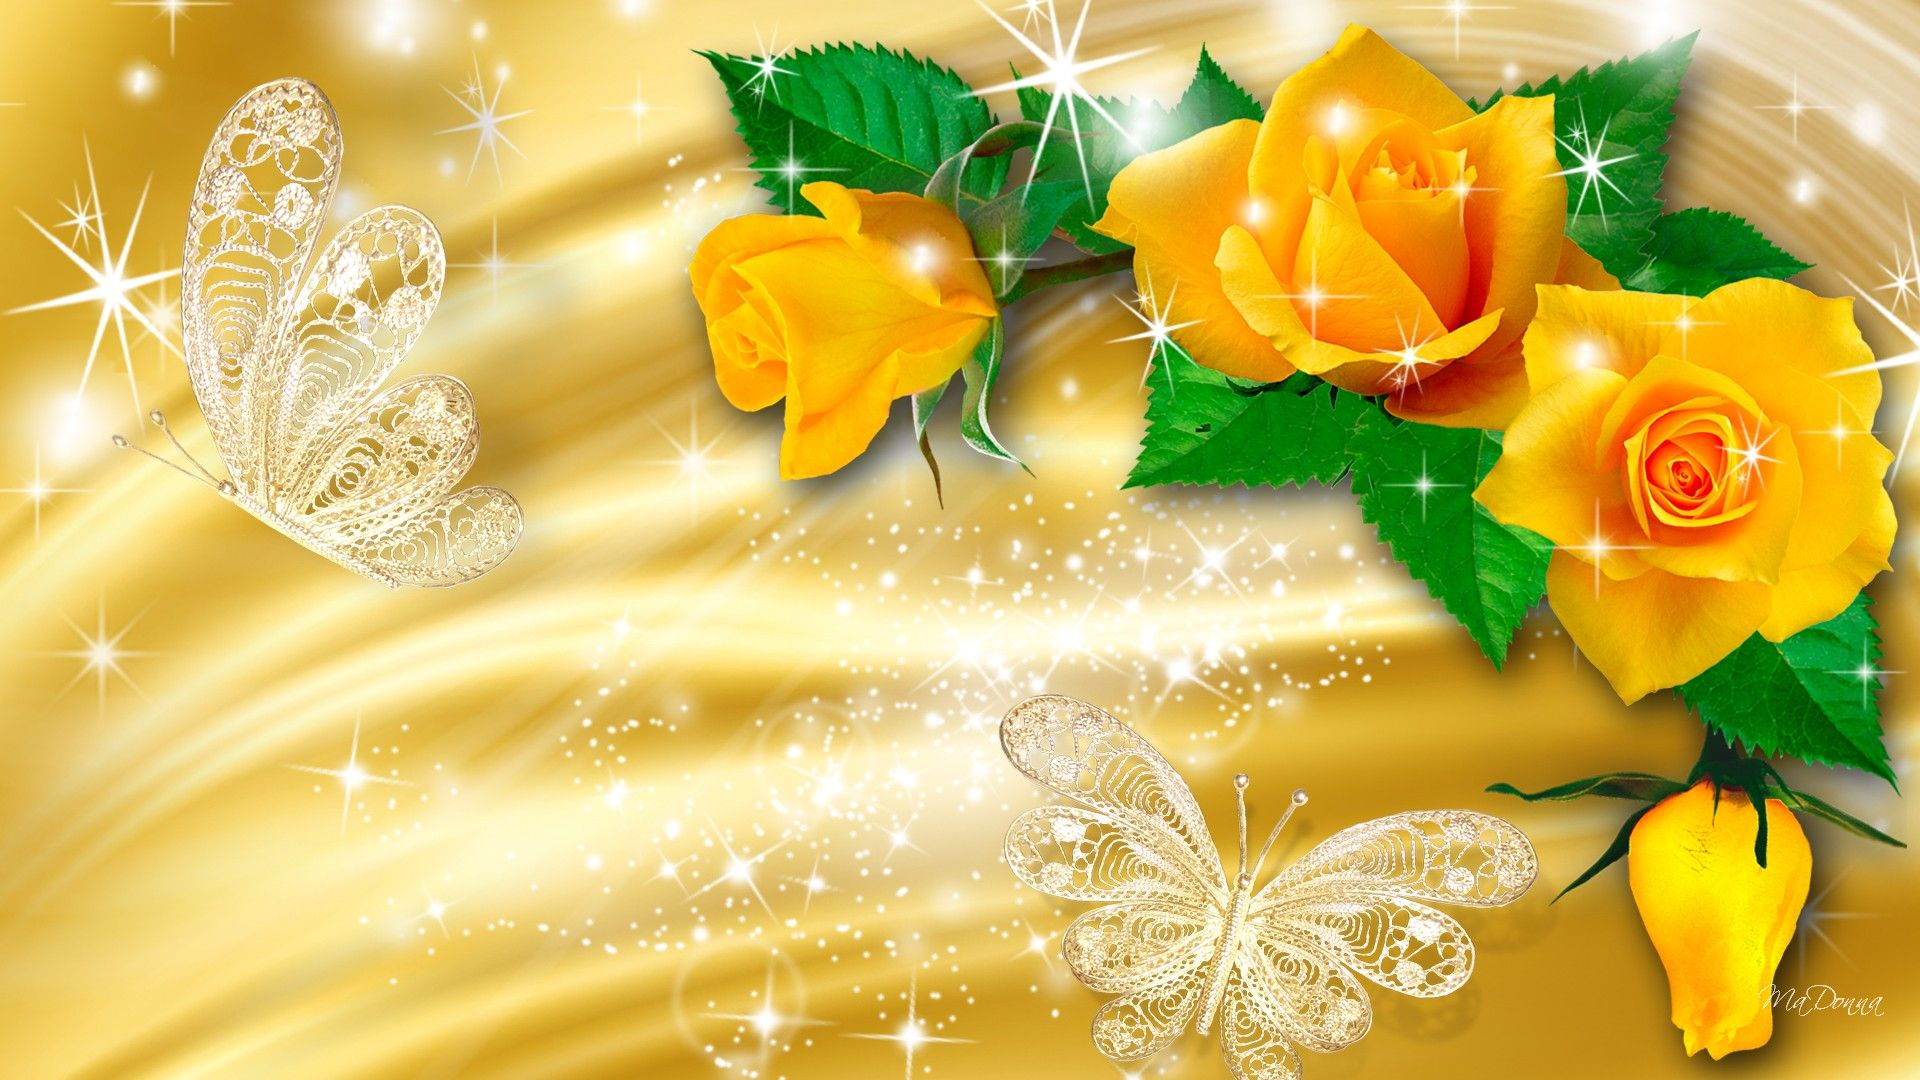 Yellow Flowers Wallpapers HD Pictures One HD Wallpaper Pictures